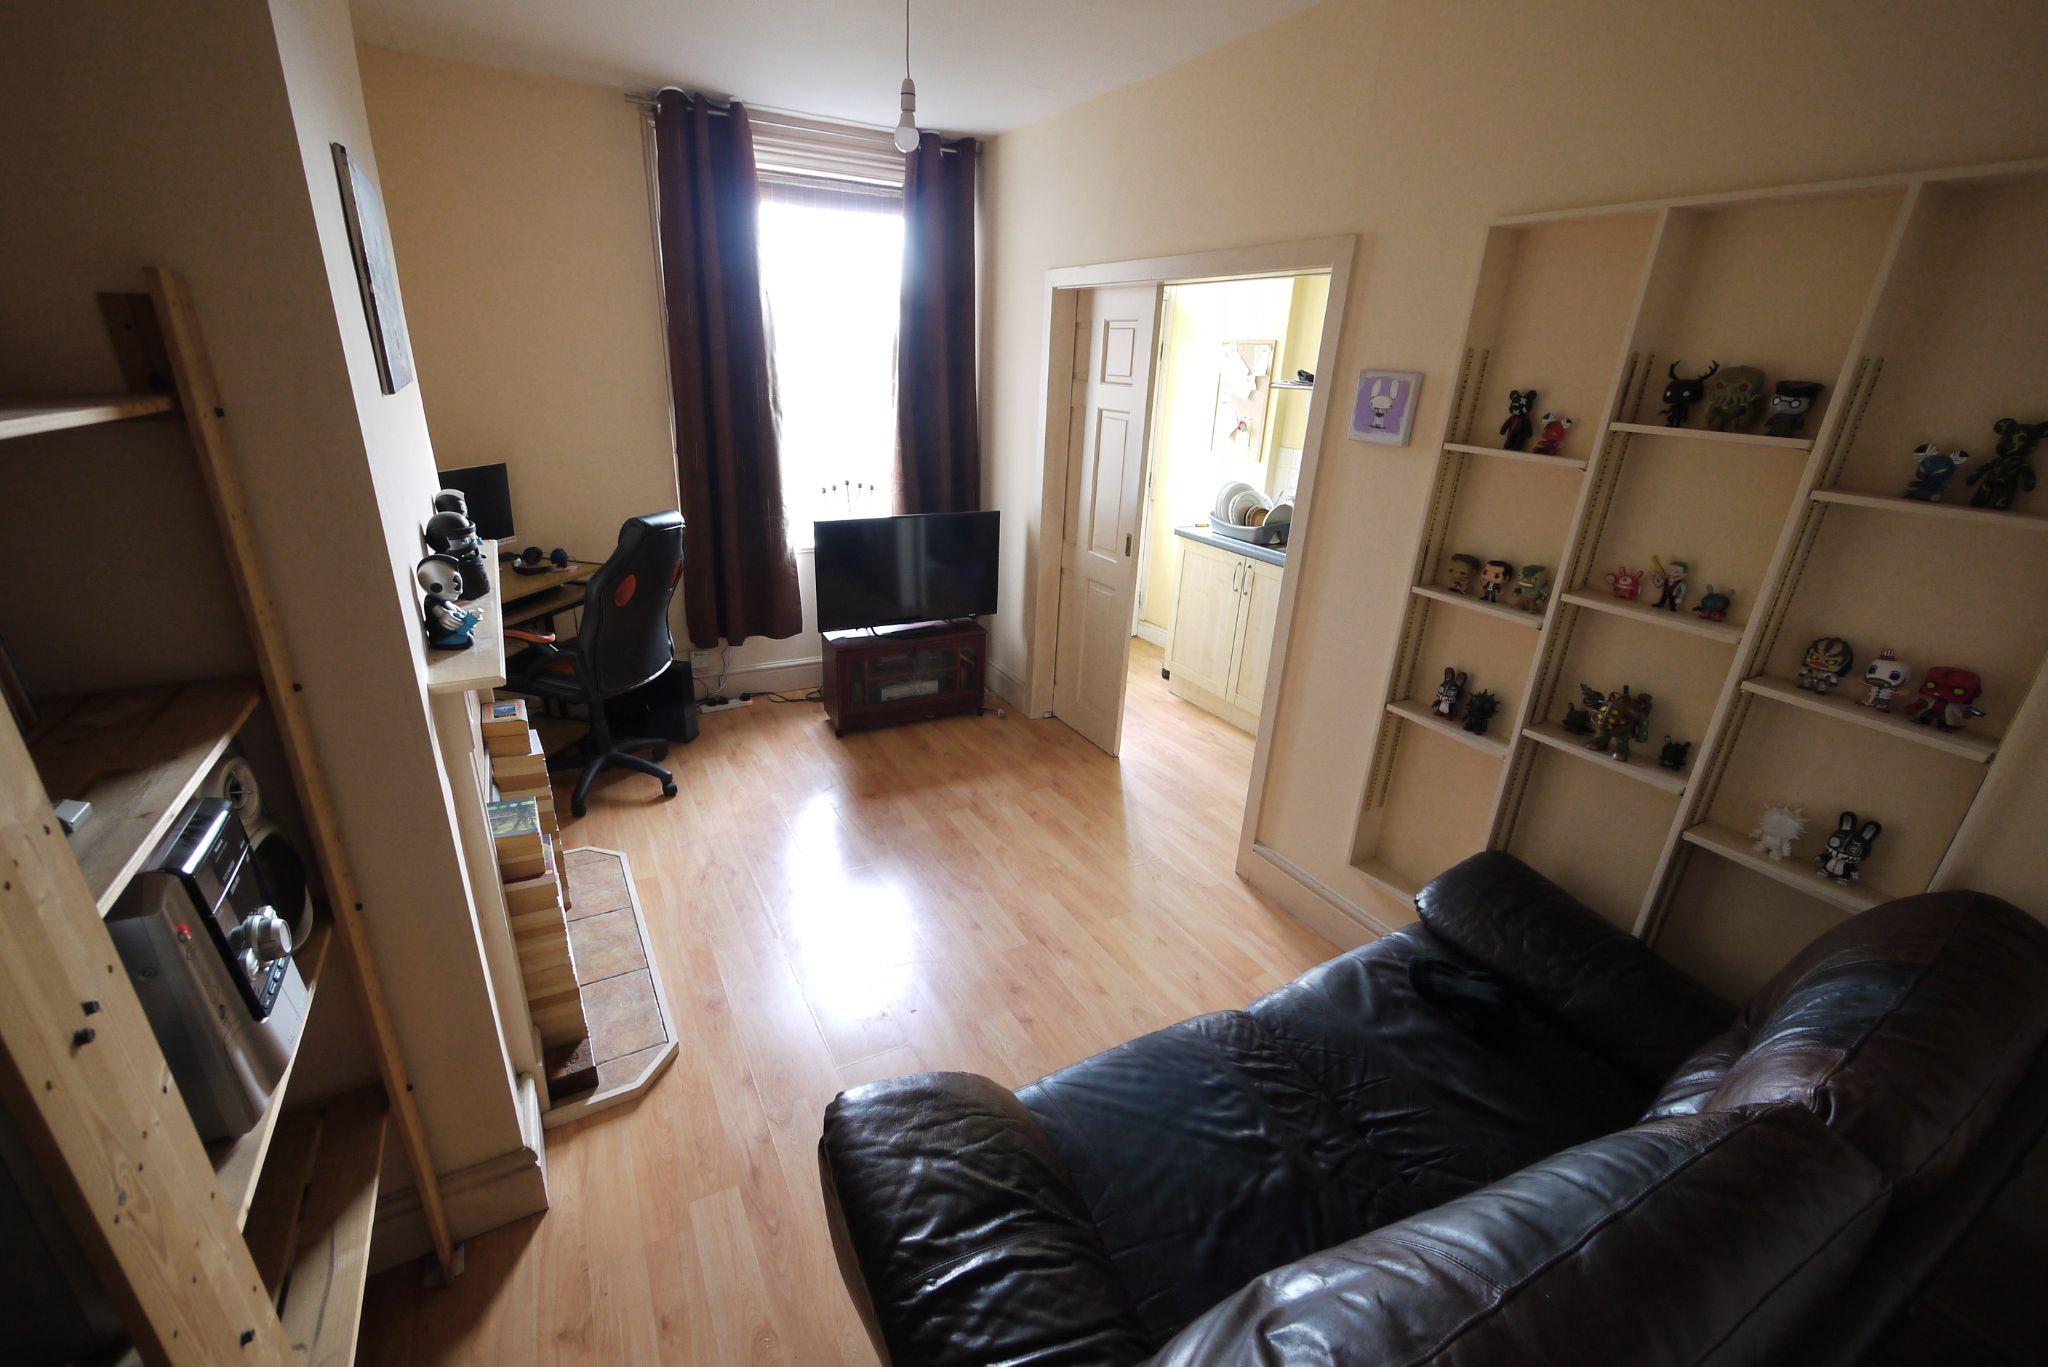 1 bedroom end terraced house SSTC in Brighouse - Photograph 4.